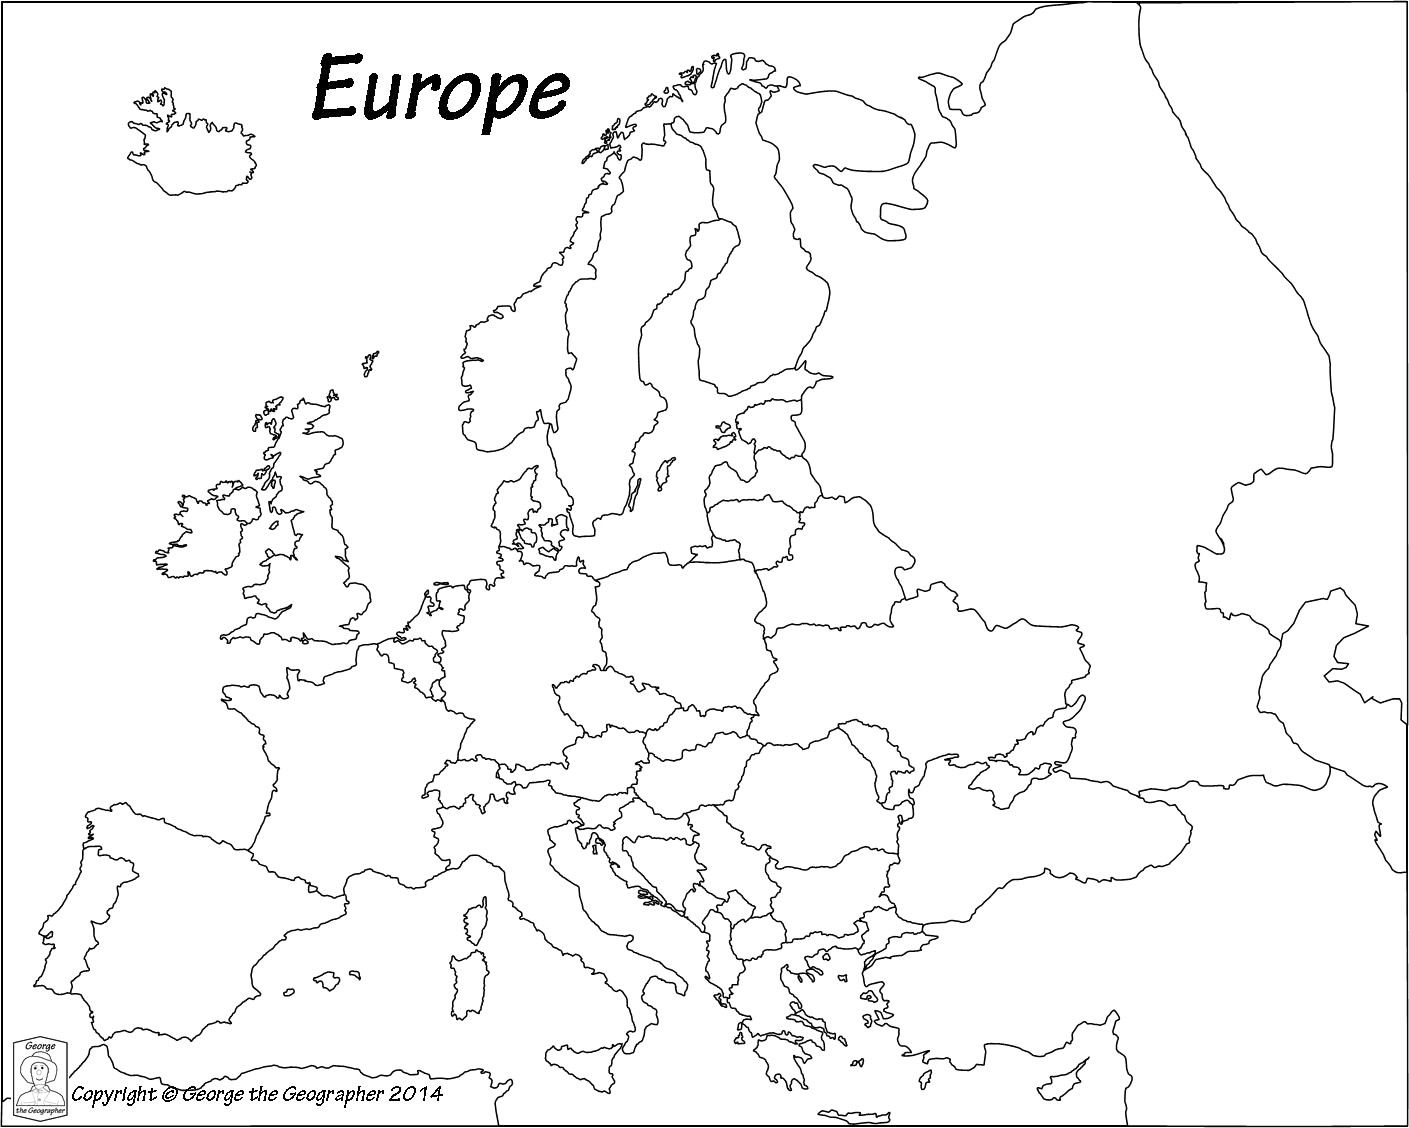 map of europe unlabeled Europe Unlabeled Map Telene Me And Of Black White | Free printable